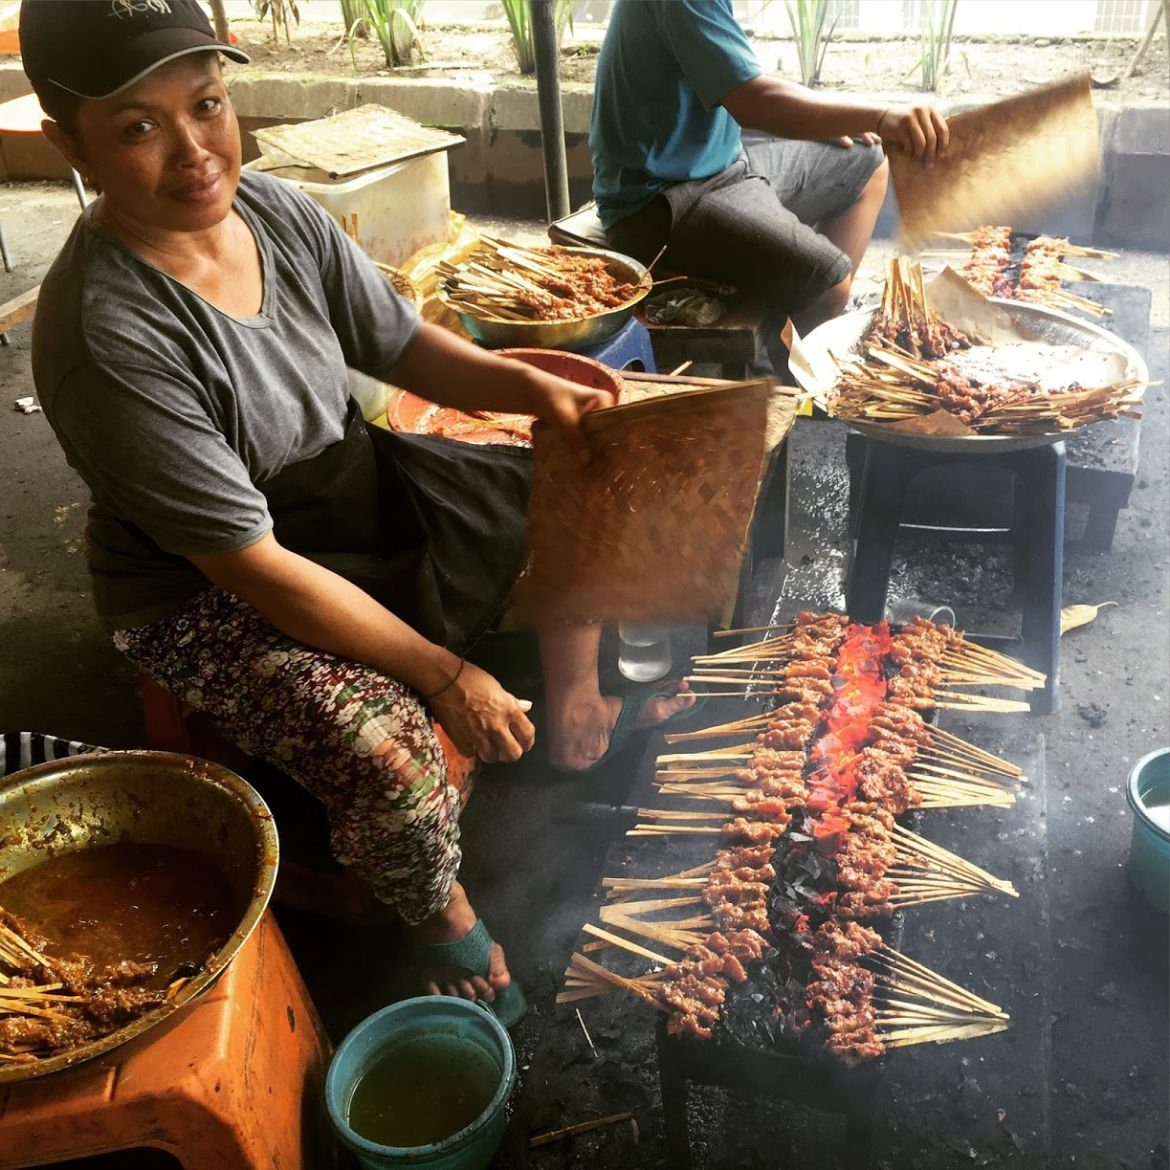 Sate Babi - The Best Indonesian Food in Bali